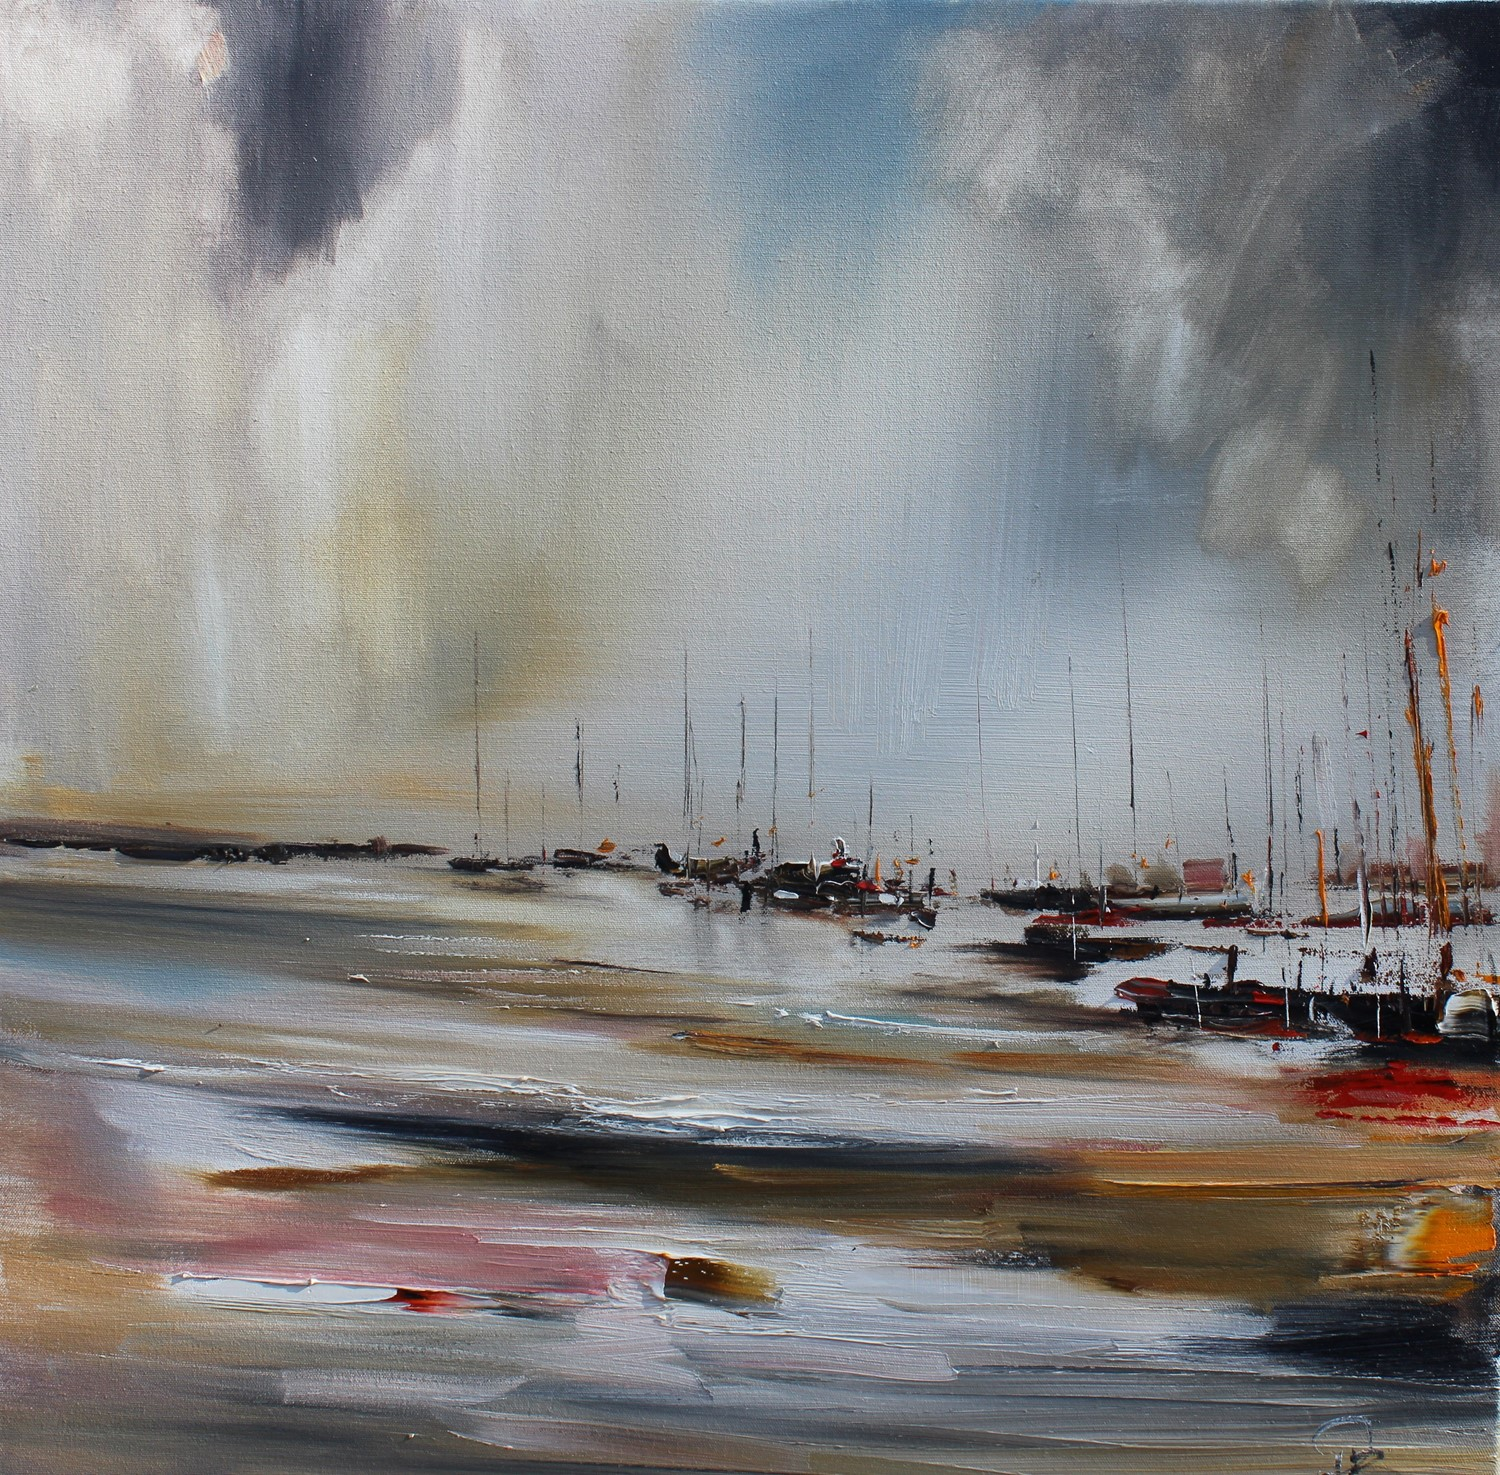 'Sailing on Silvery Waters' by artist Rosanne Barr